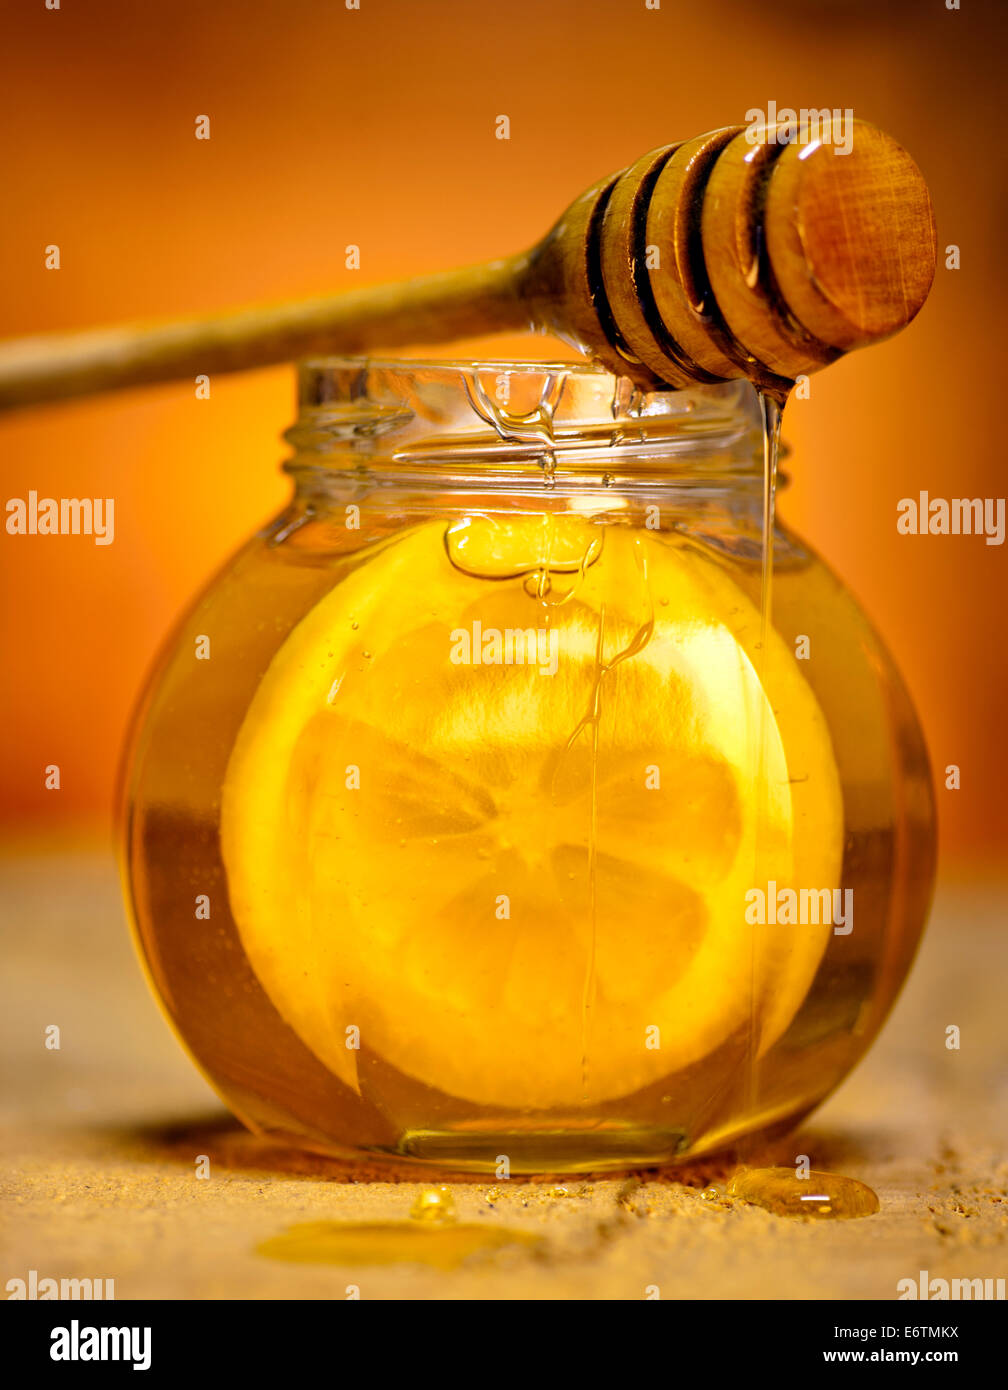 Glass jar of honey with wooden drizzler and slice of lemon on old wooden background. Stock Photo